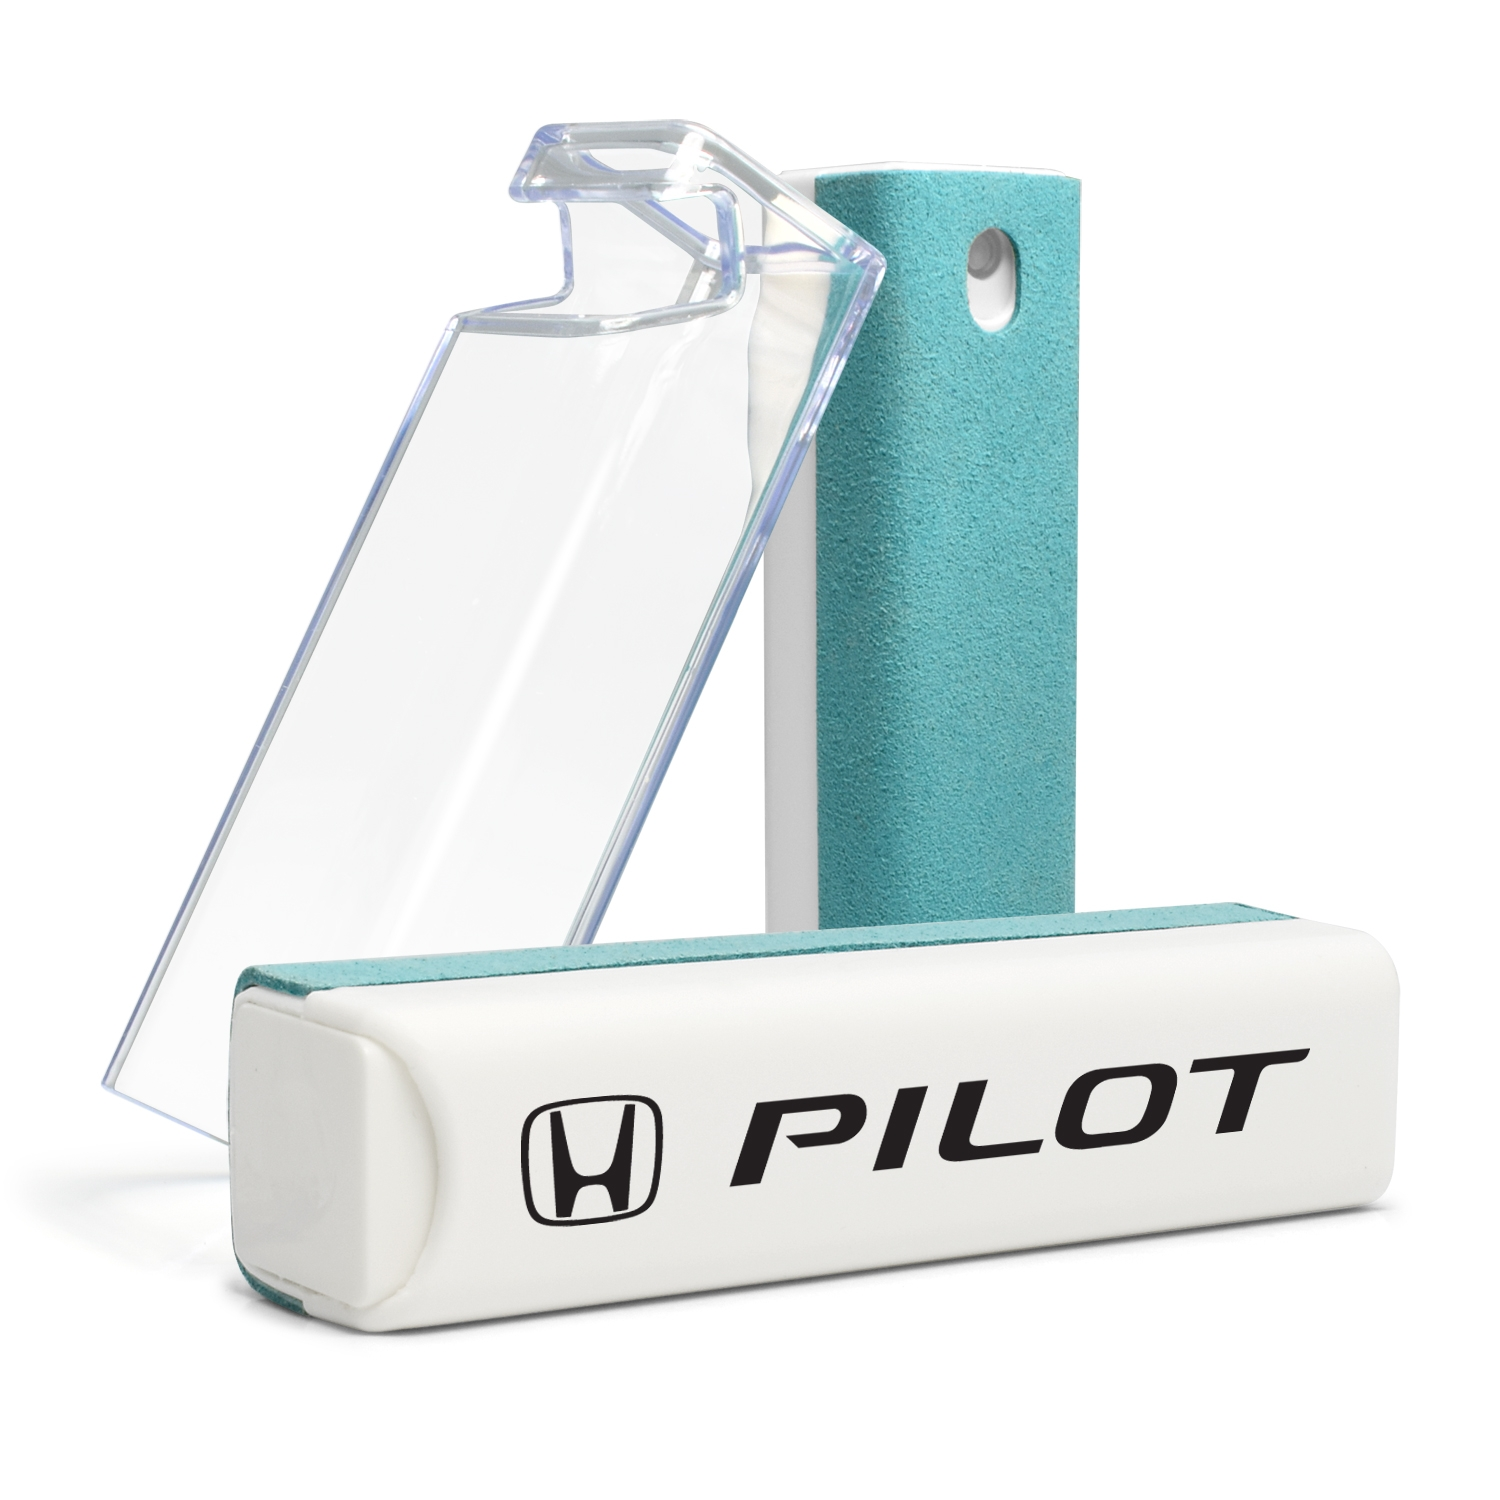 Honda Pilot All-in-One Blue Wipe Navigation Screen Cleaner with Clear Cell Phone Stand